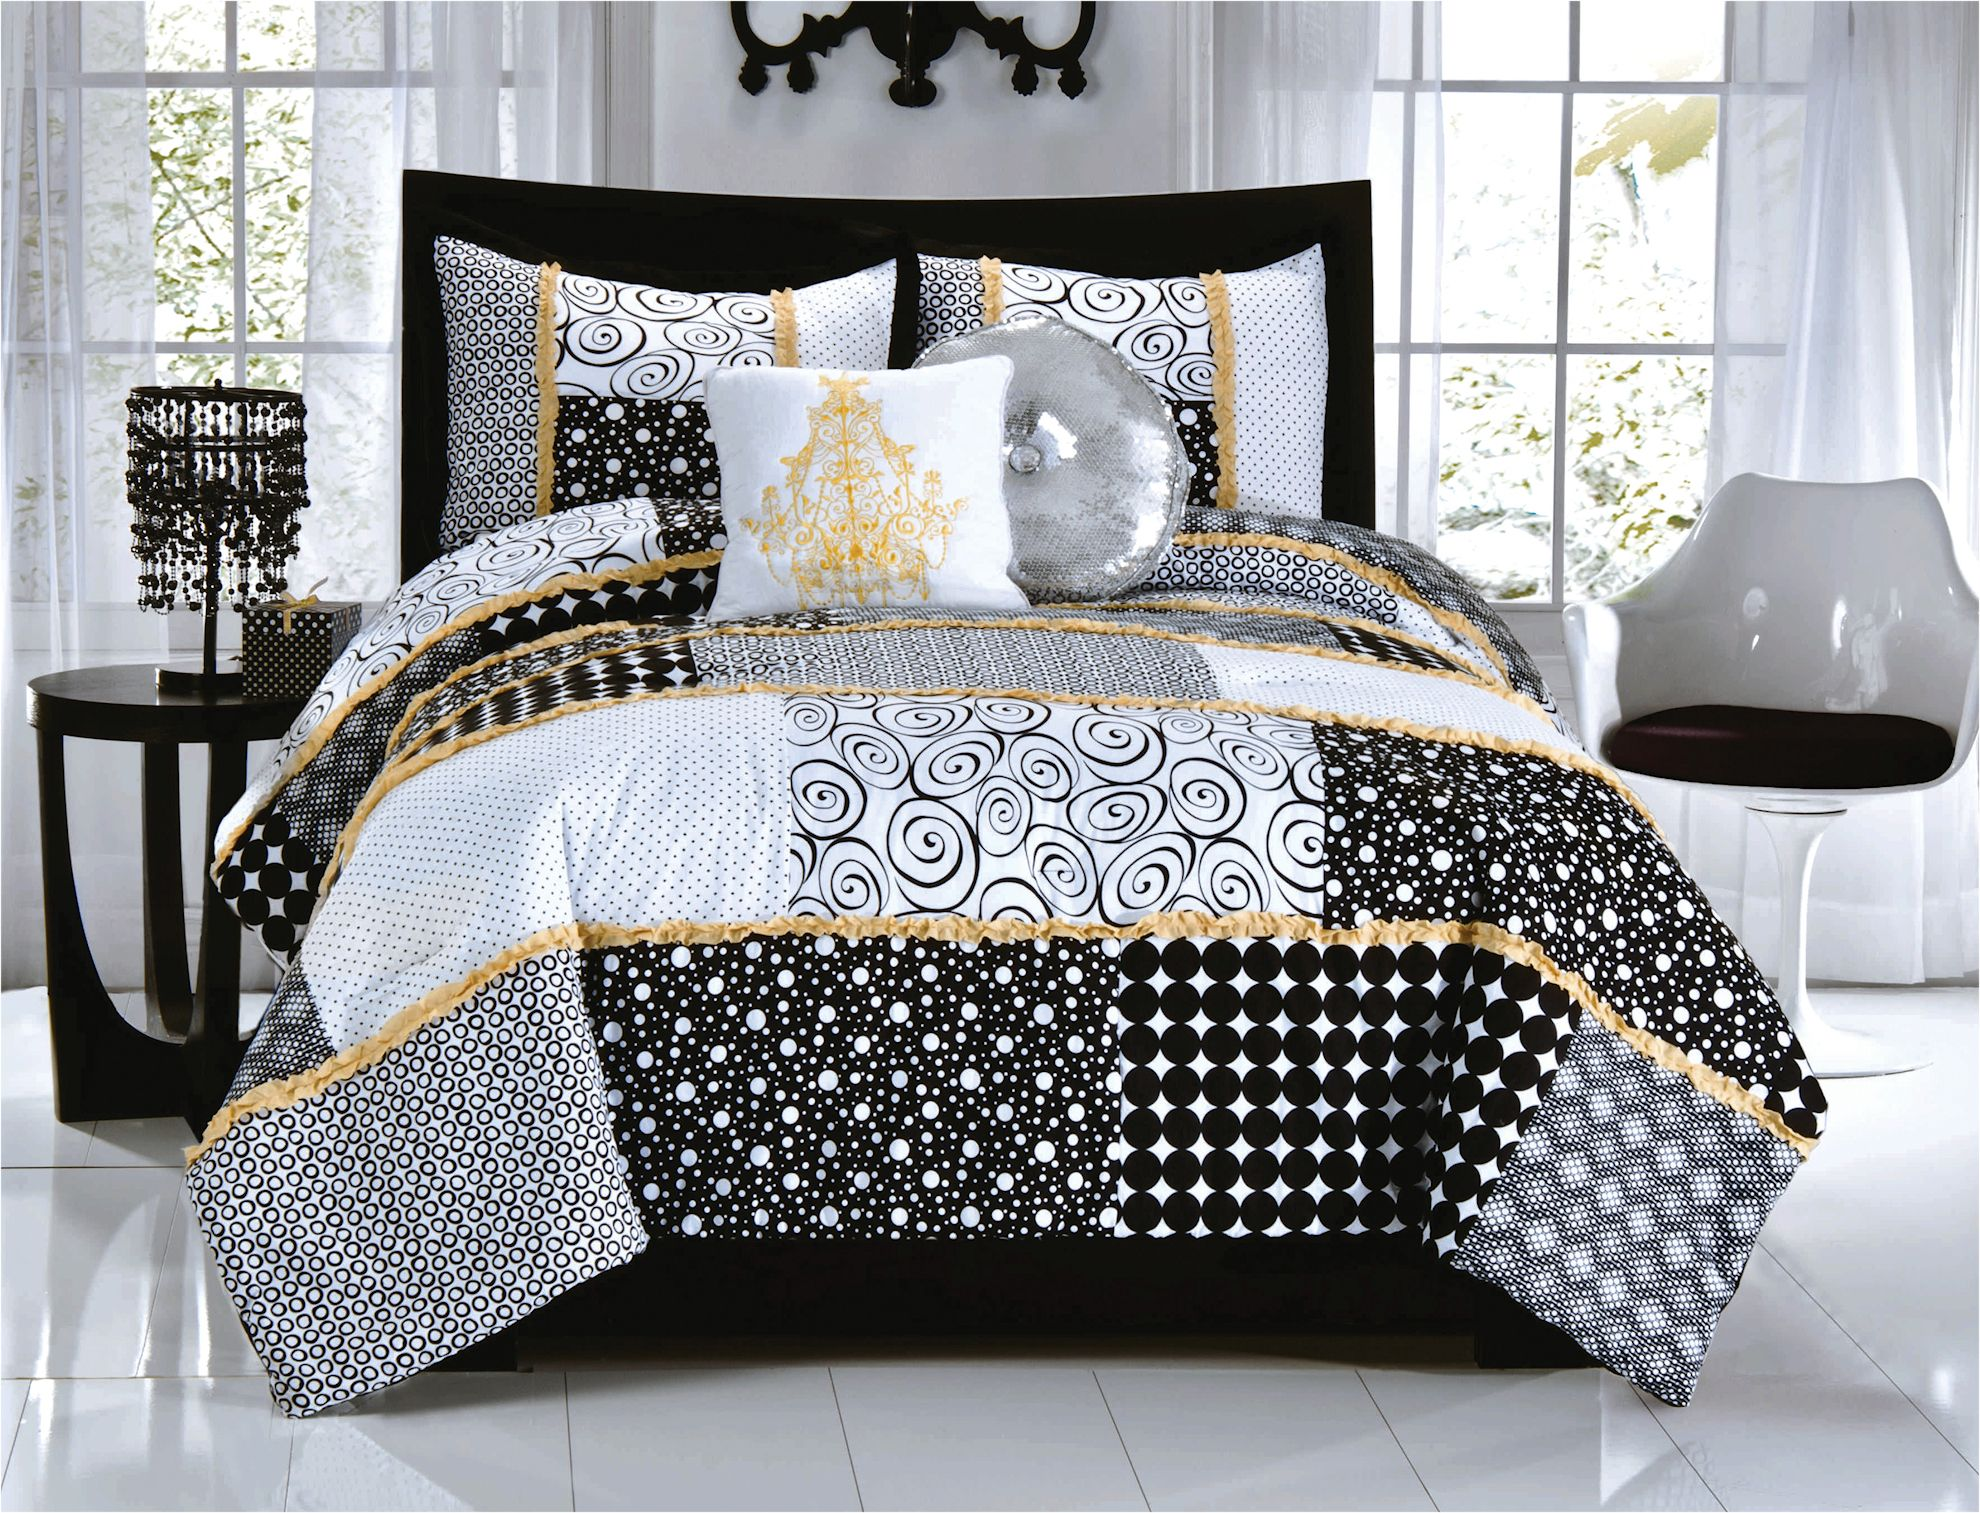 Bed sheet set black and white - Elegant Black White Dot Scroll Teen Girl Bedding Twin Full Queen Comforter Set Gold